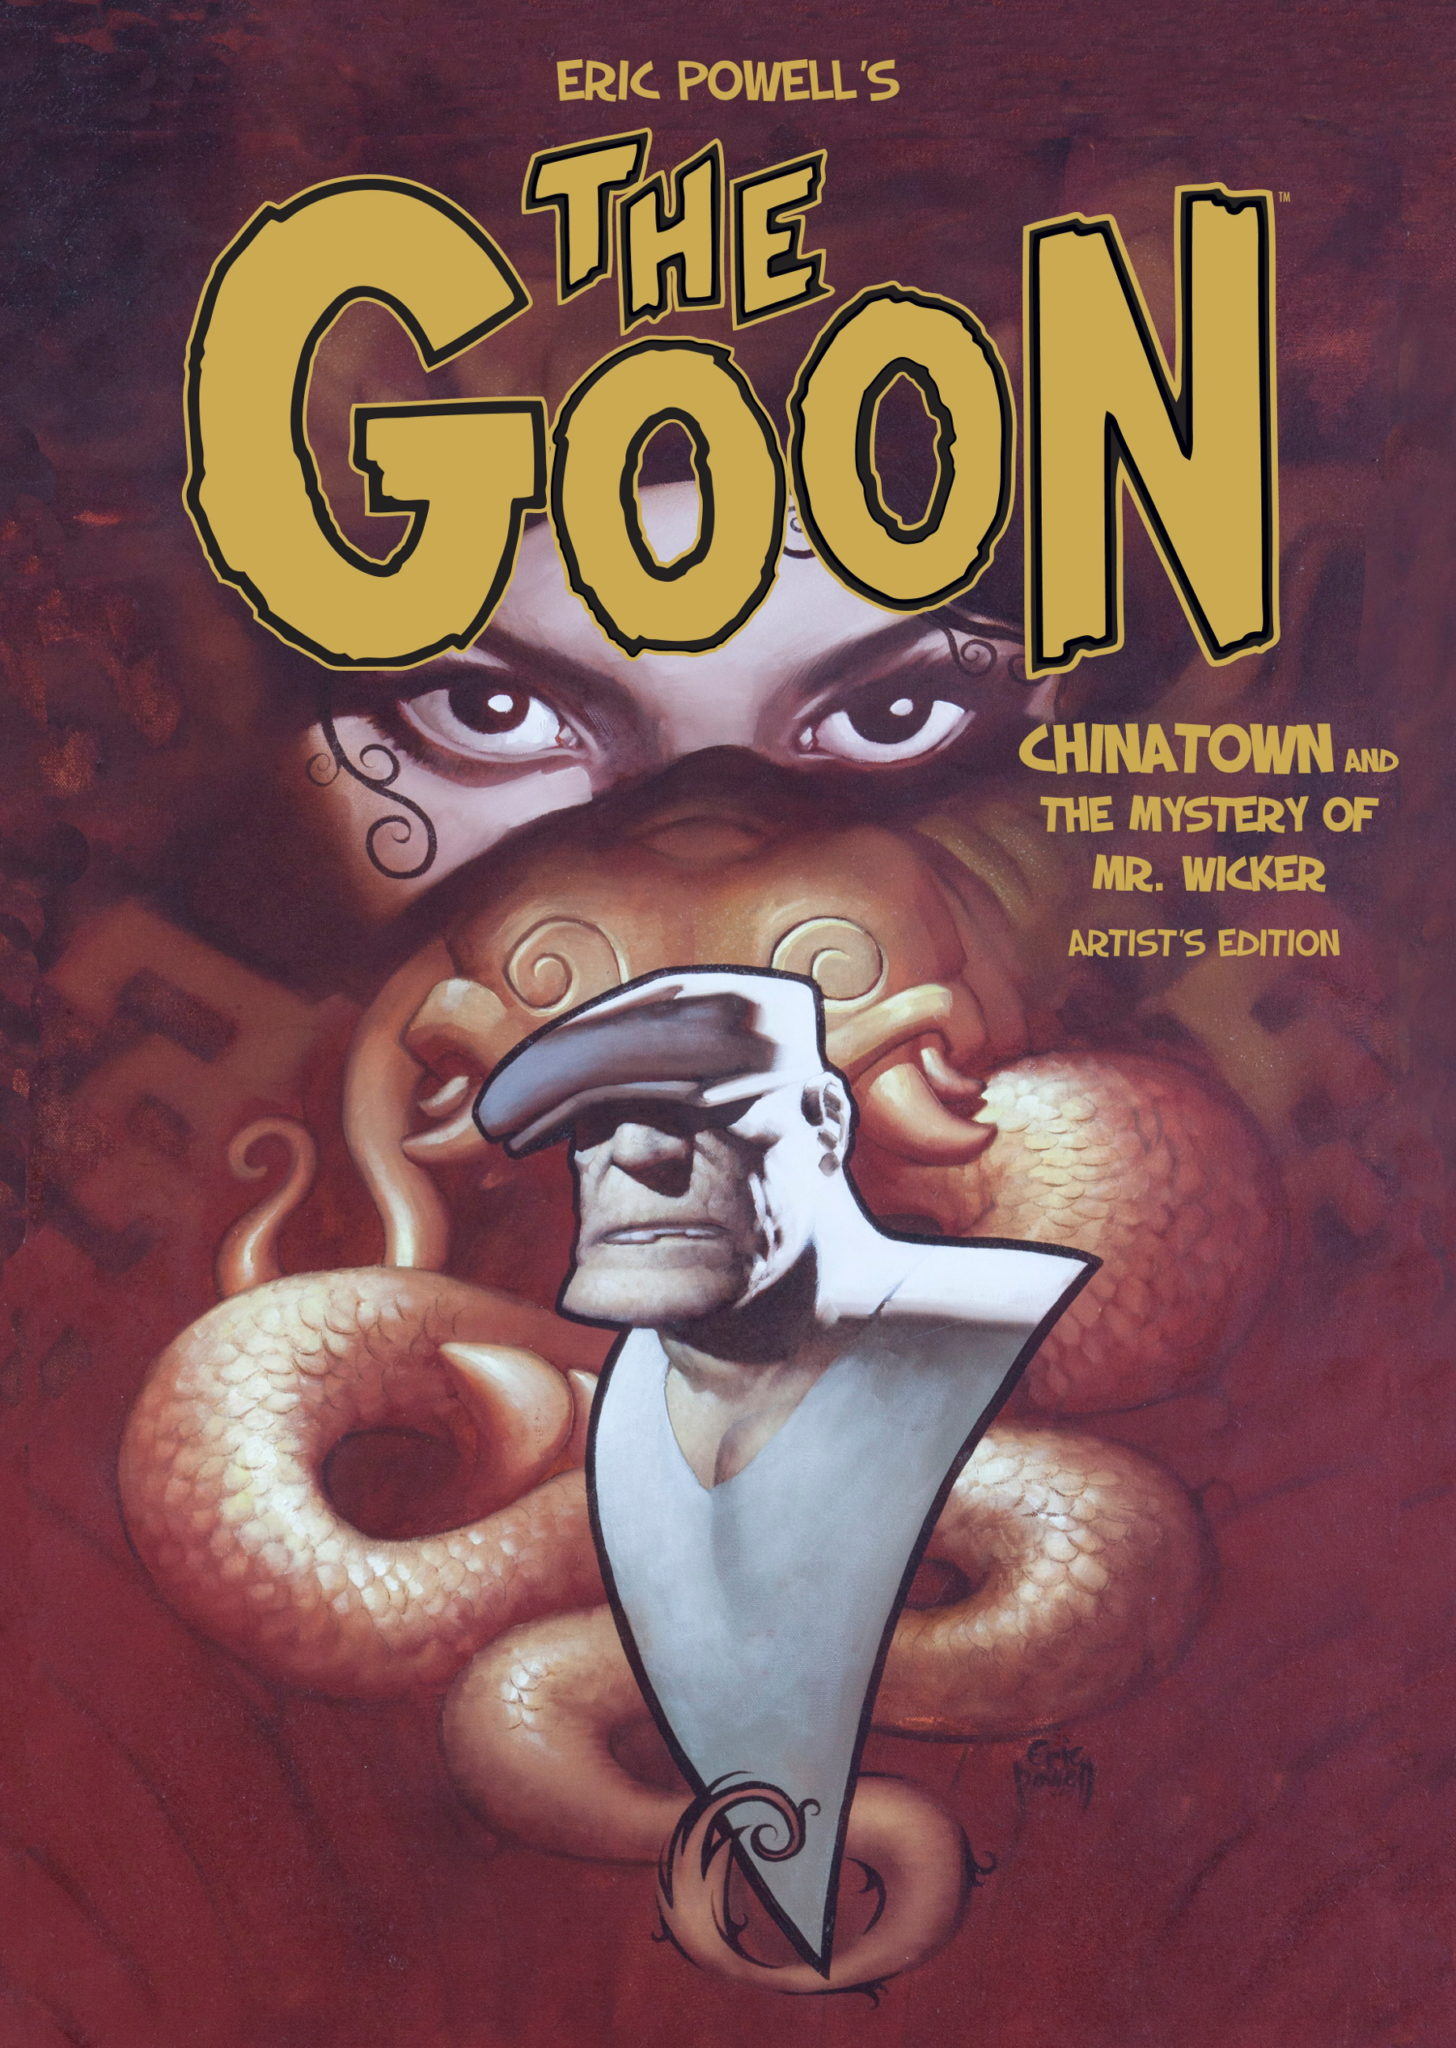 Review | Eric Powell's The Goon Artist's Edition